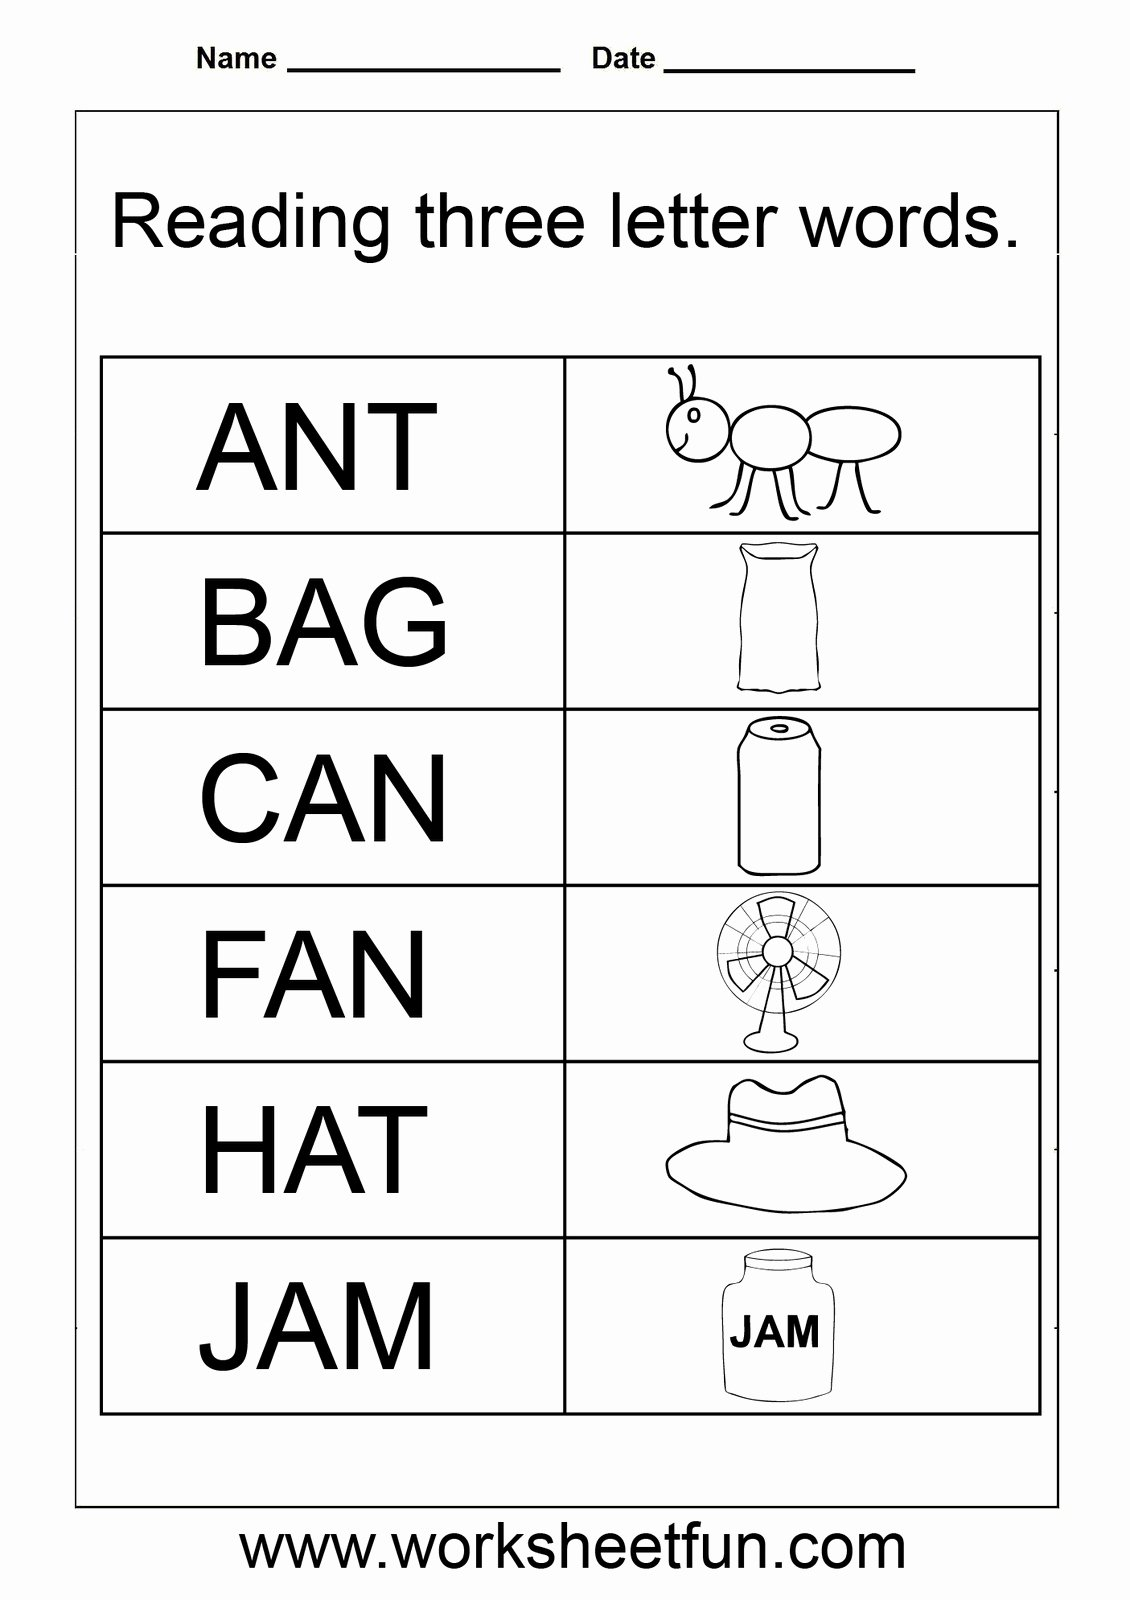 Three Letter Words Worksheets for Preschoolers Lovely 3 Letter Words Worksheets for Kindergarten